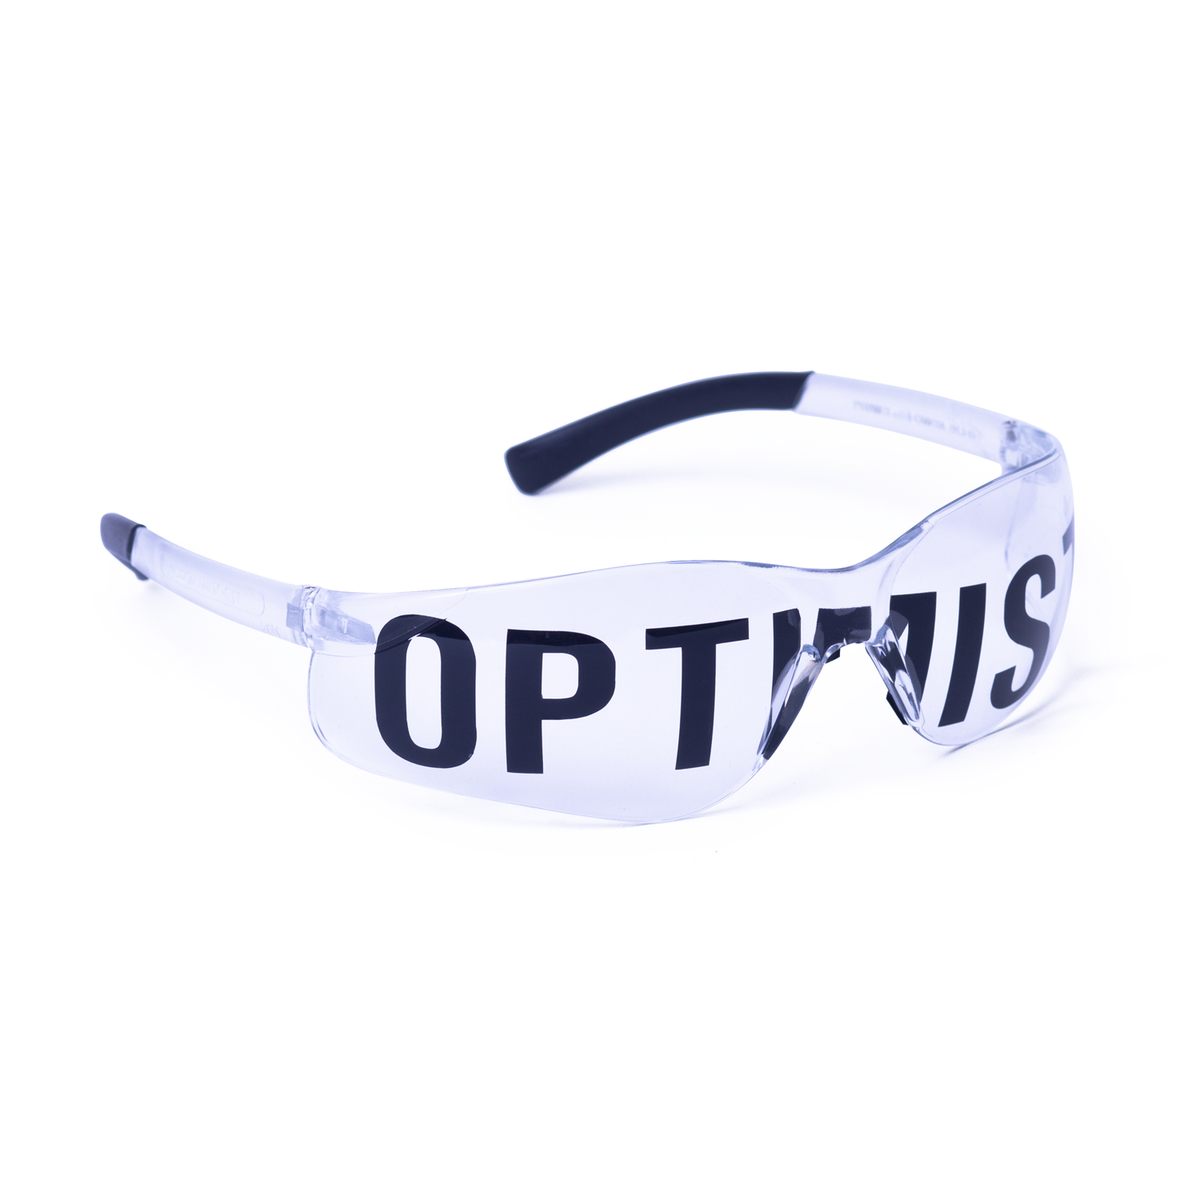 SPEAK VOLUMES COLLECTION  SUNNIES + OPTICS Sunglasses Collection- NRODA